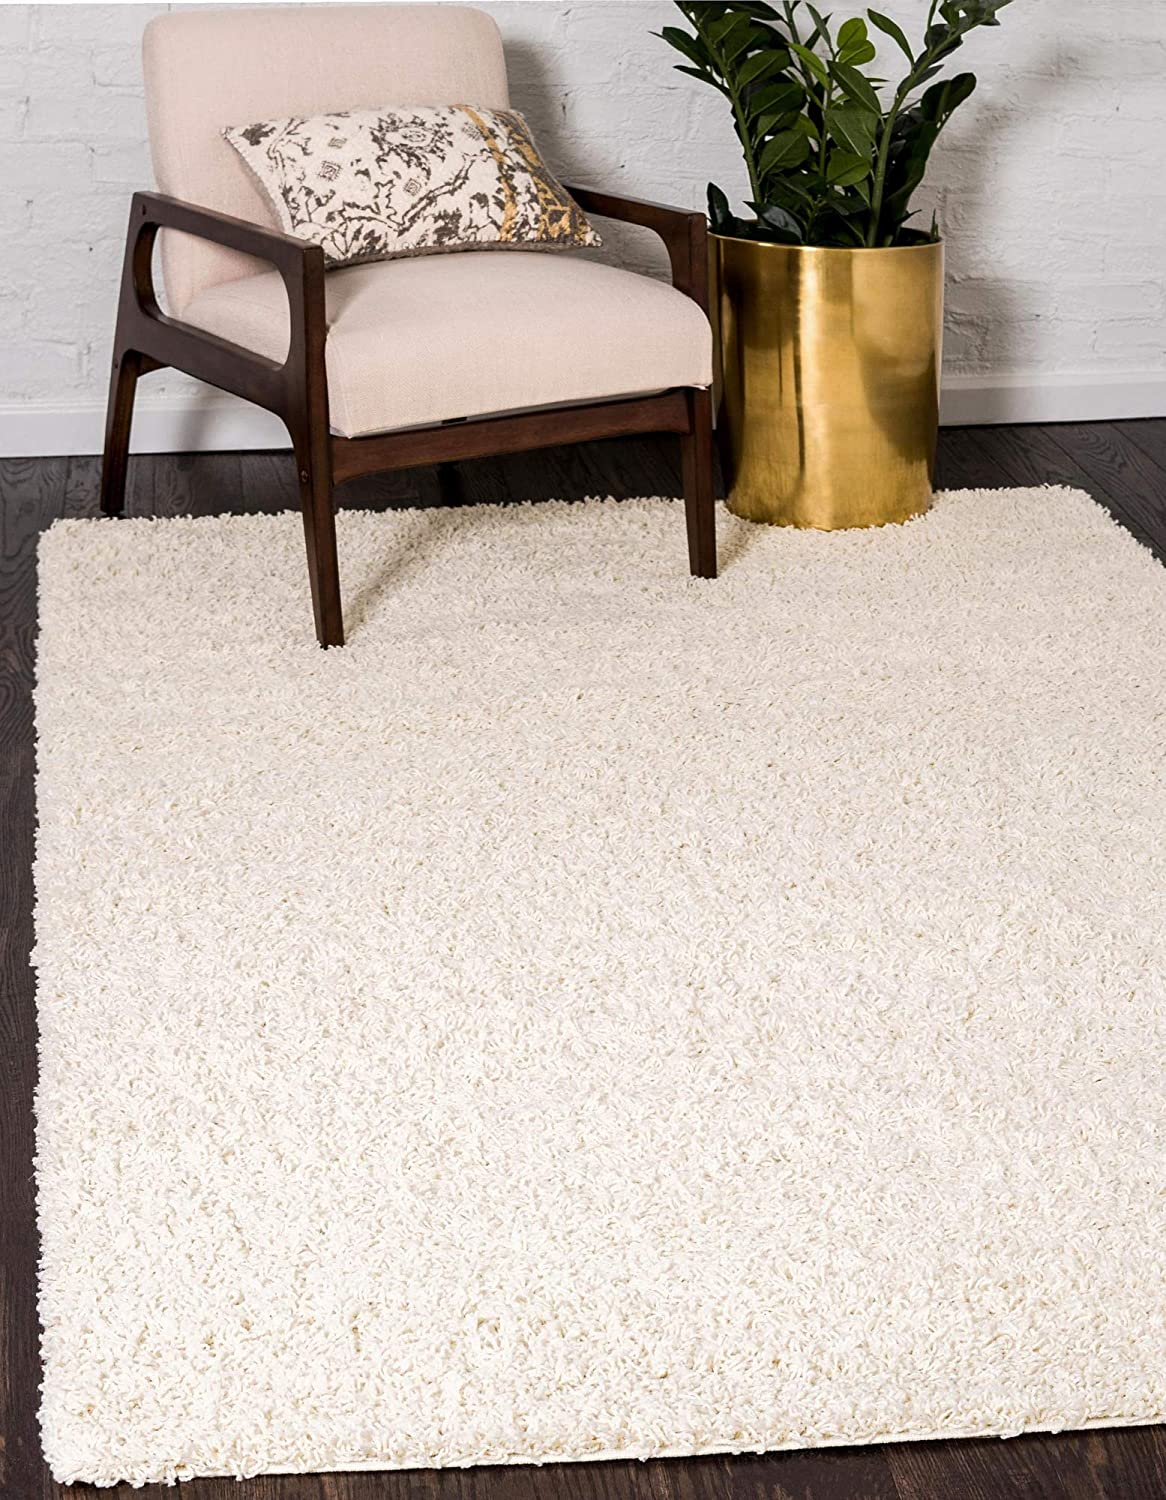 Unique Loom Solo Solid Shag Collection Modern Plush Pure Ivory Area Rug (5' 0 x 8' 0)